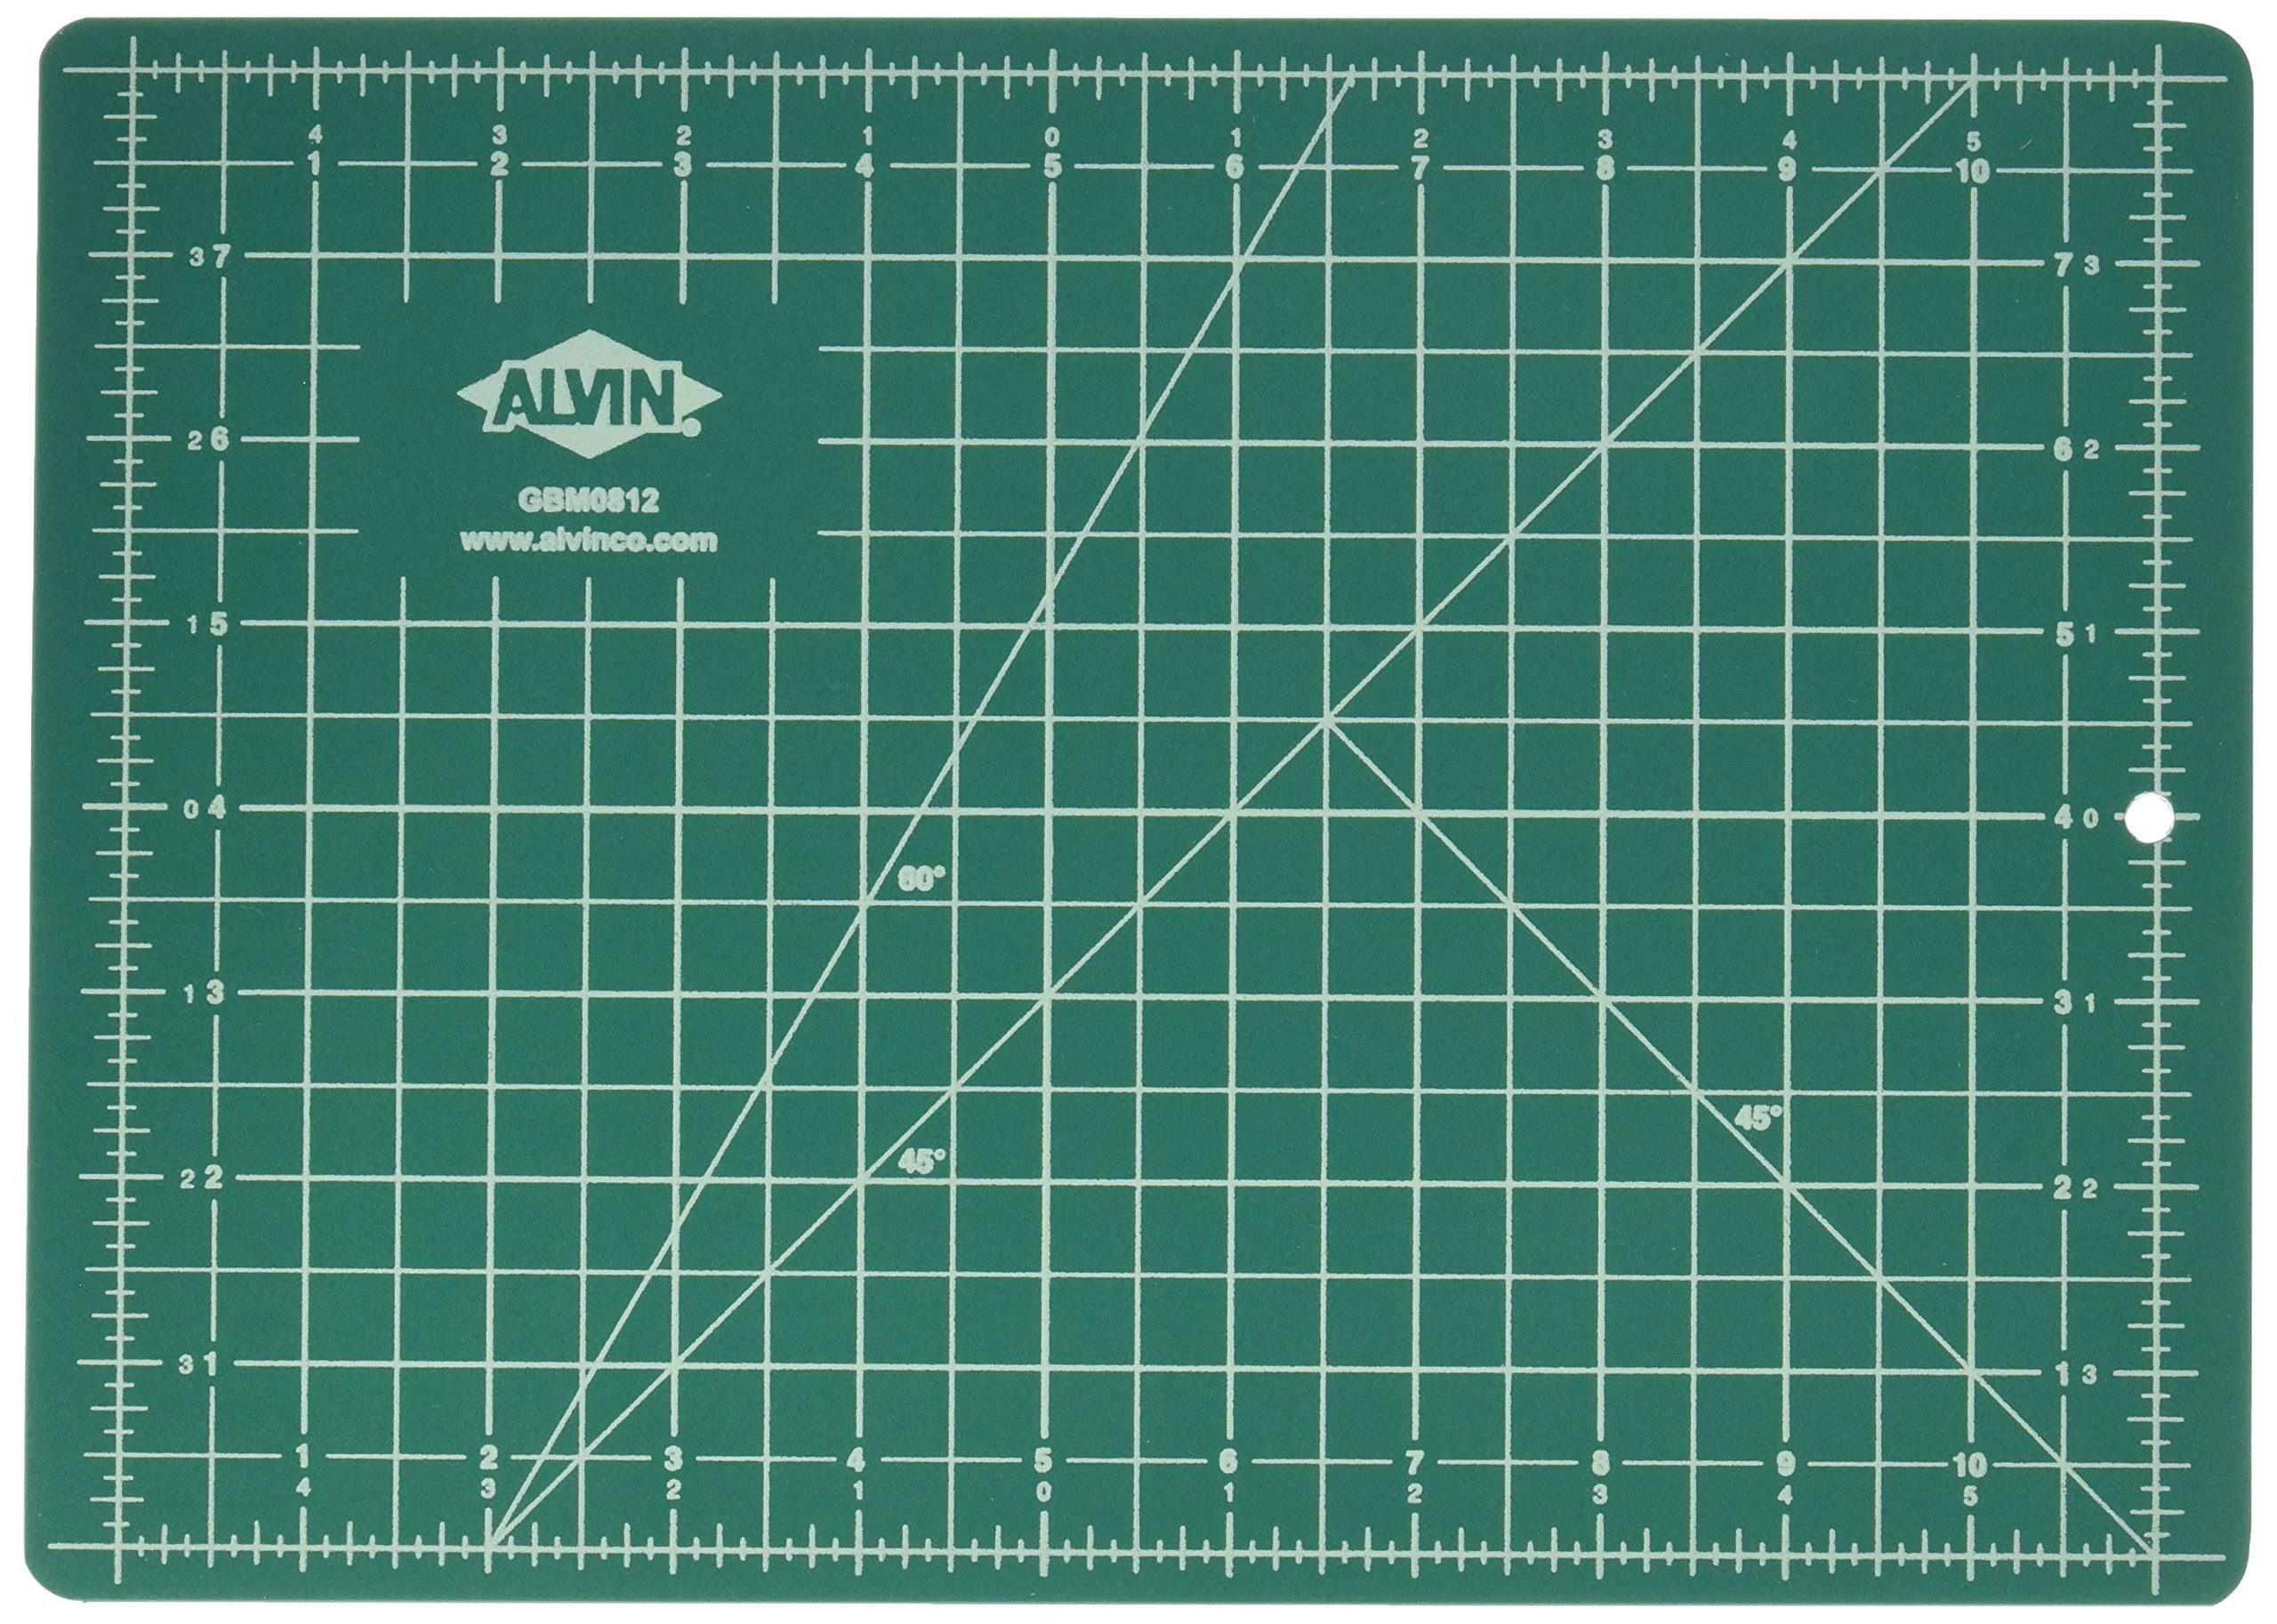 "Alvin Double Sided Self Healing Cutting Mat - 8 1/2"" x 12"", Green and Black"